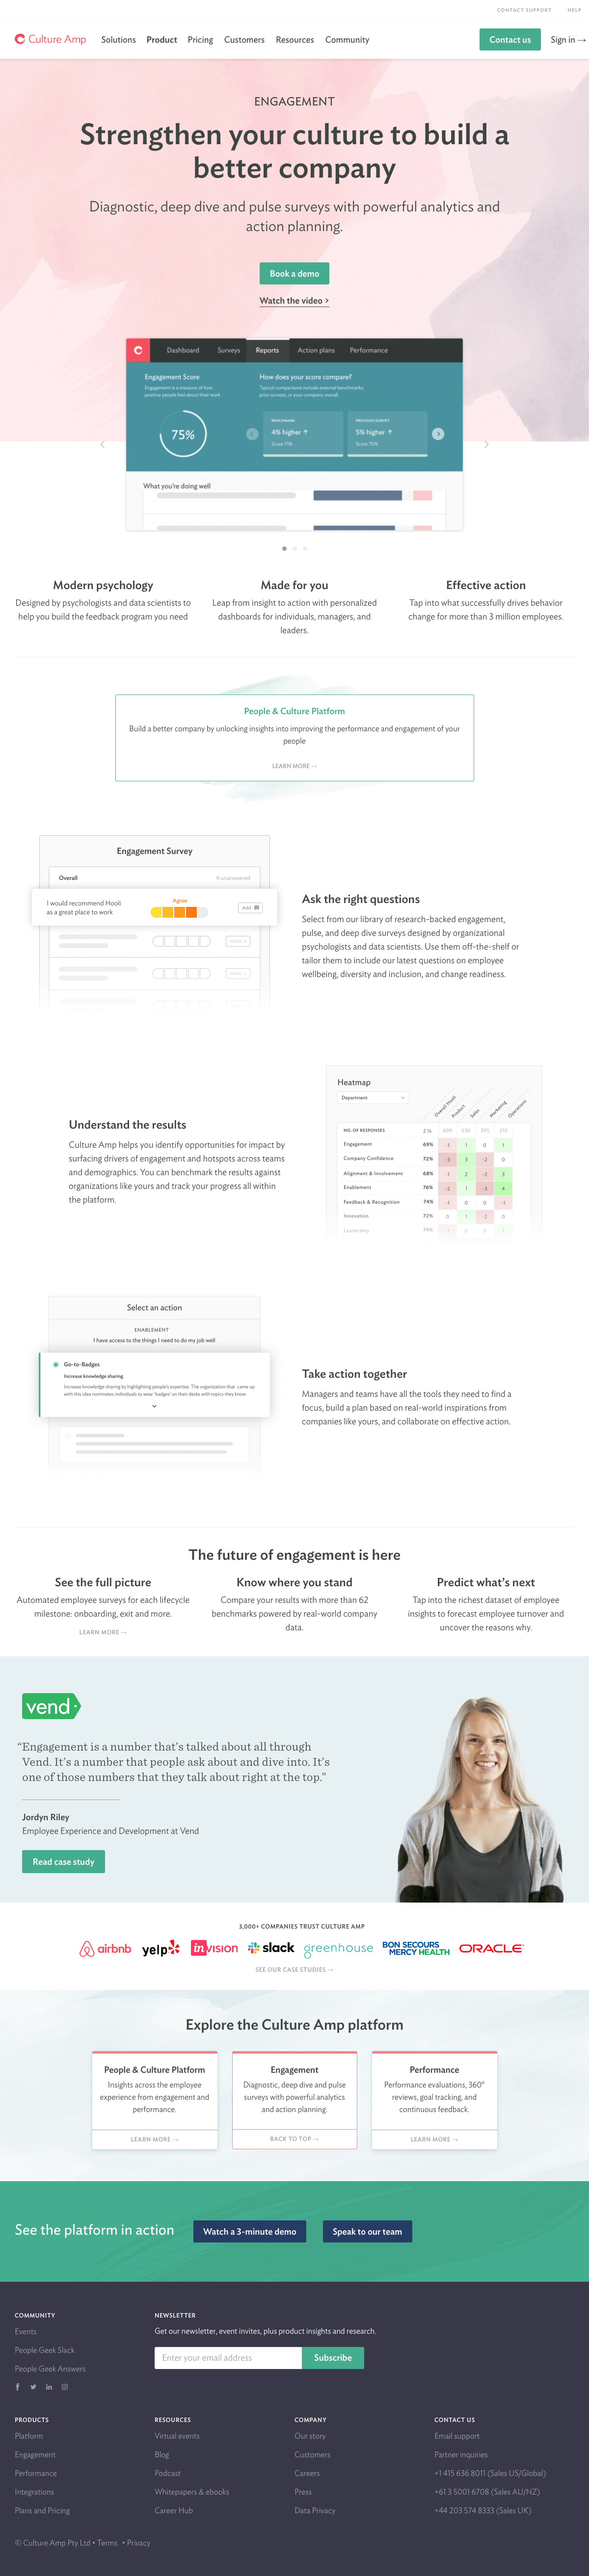 Culture Amp – Features page